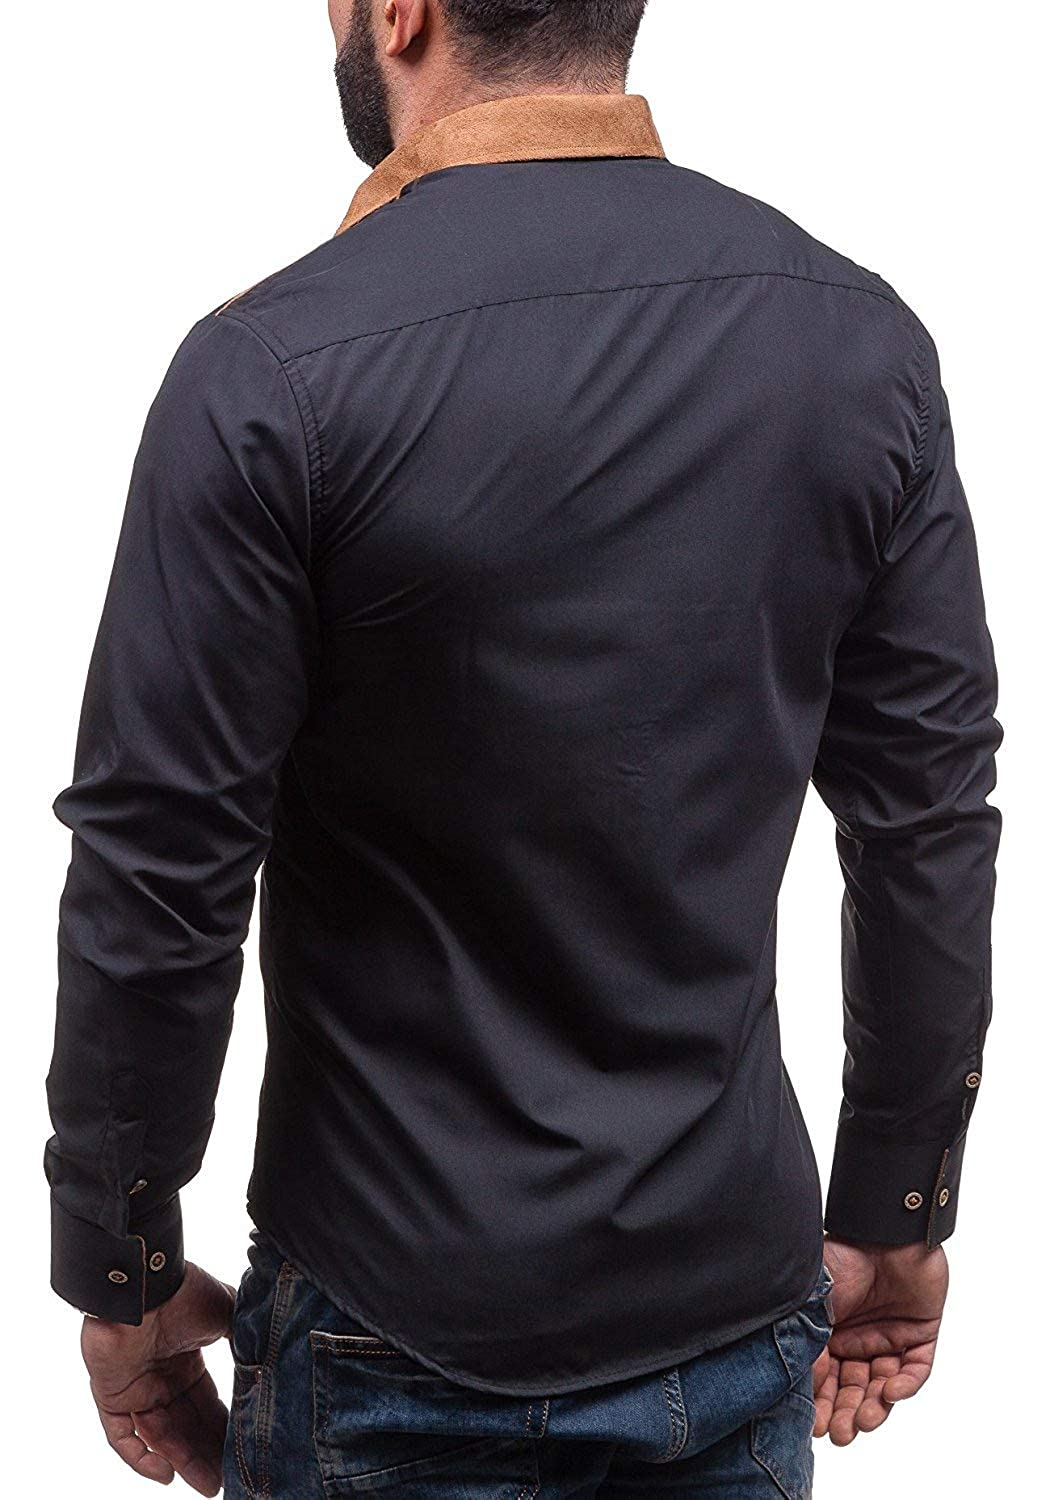 YUNY Mens Topstitching Long-Sleeve Fit Button Down Pure Color Shirt Black 3XL